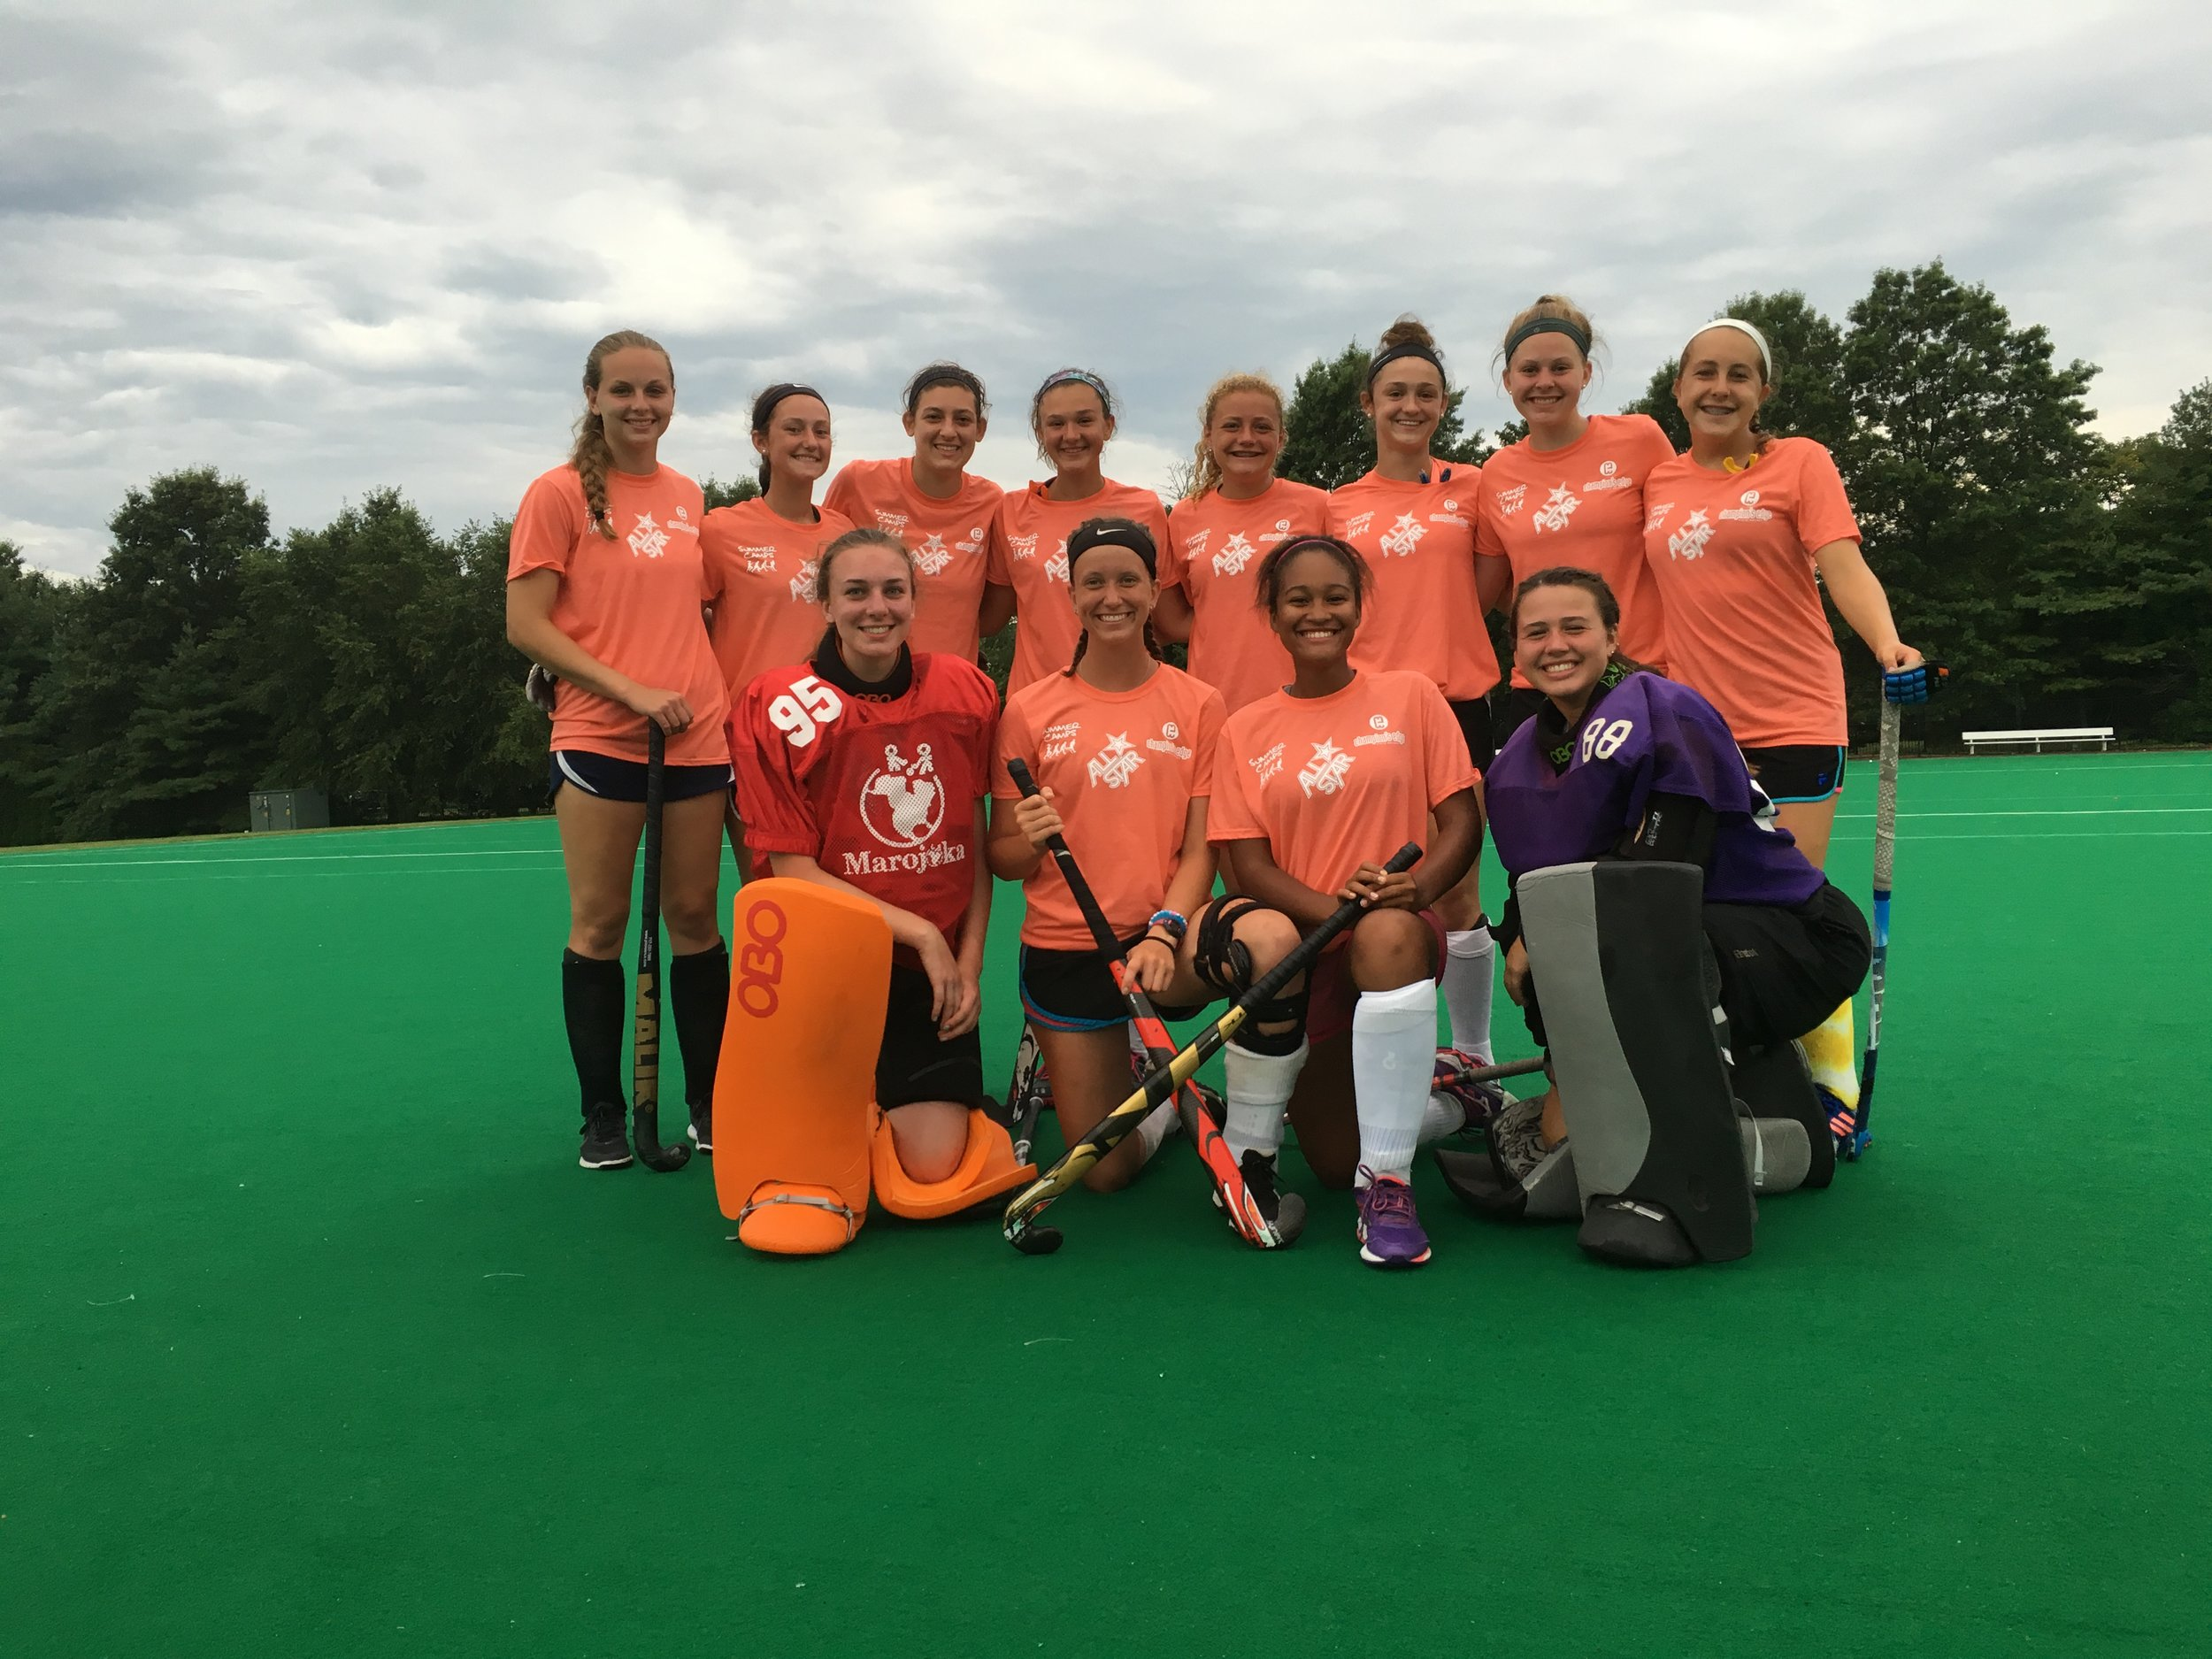 Residential Camp    It's back! CE Monmouth July 18th -21st 2-19   - We are excited to relaunch our resident camp.  Hosted on the beautiful new water based astroturf at the equally beautiful Monmouth University. Located just 1 mile from the beach (this could be important information!).  - CE has once again evolved; our focus will remain on providing elite level coaching from elite staff comprised of National team players, D1 coaches and top International players.  - On field sessions will be sharp, intense and of course fun. Expect our staff to be involved in the action.  -New! Camp needs to be fun, we have some exciting developments up our sleeve on the social scene. Trust me, it's not just a skit night!